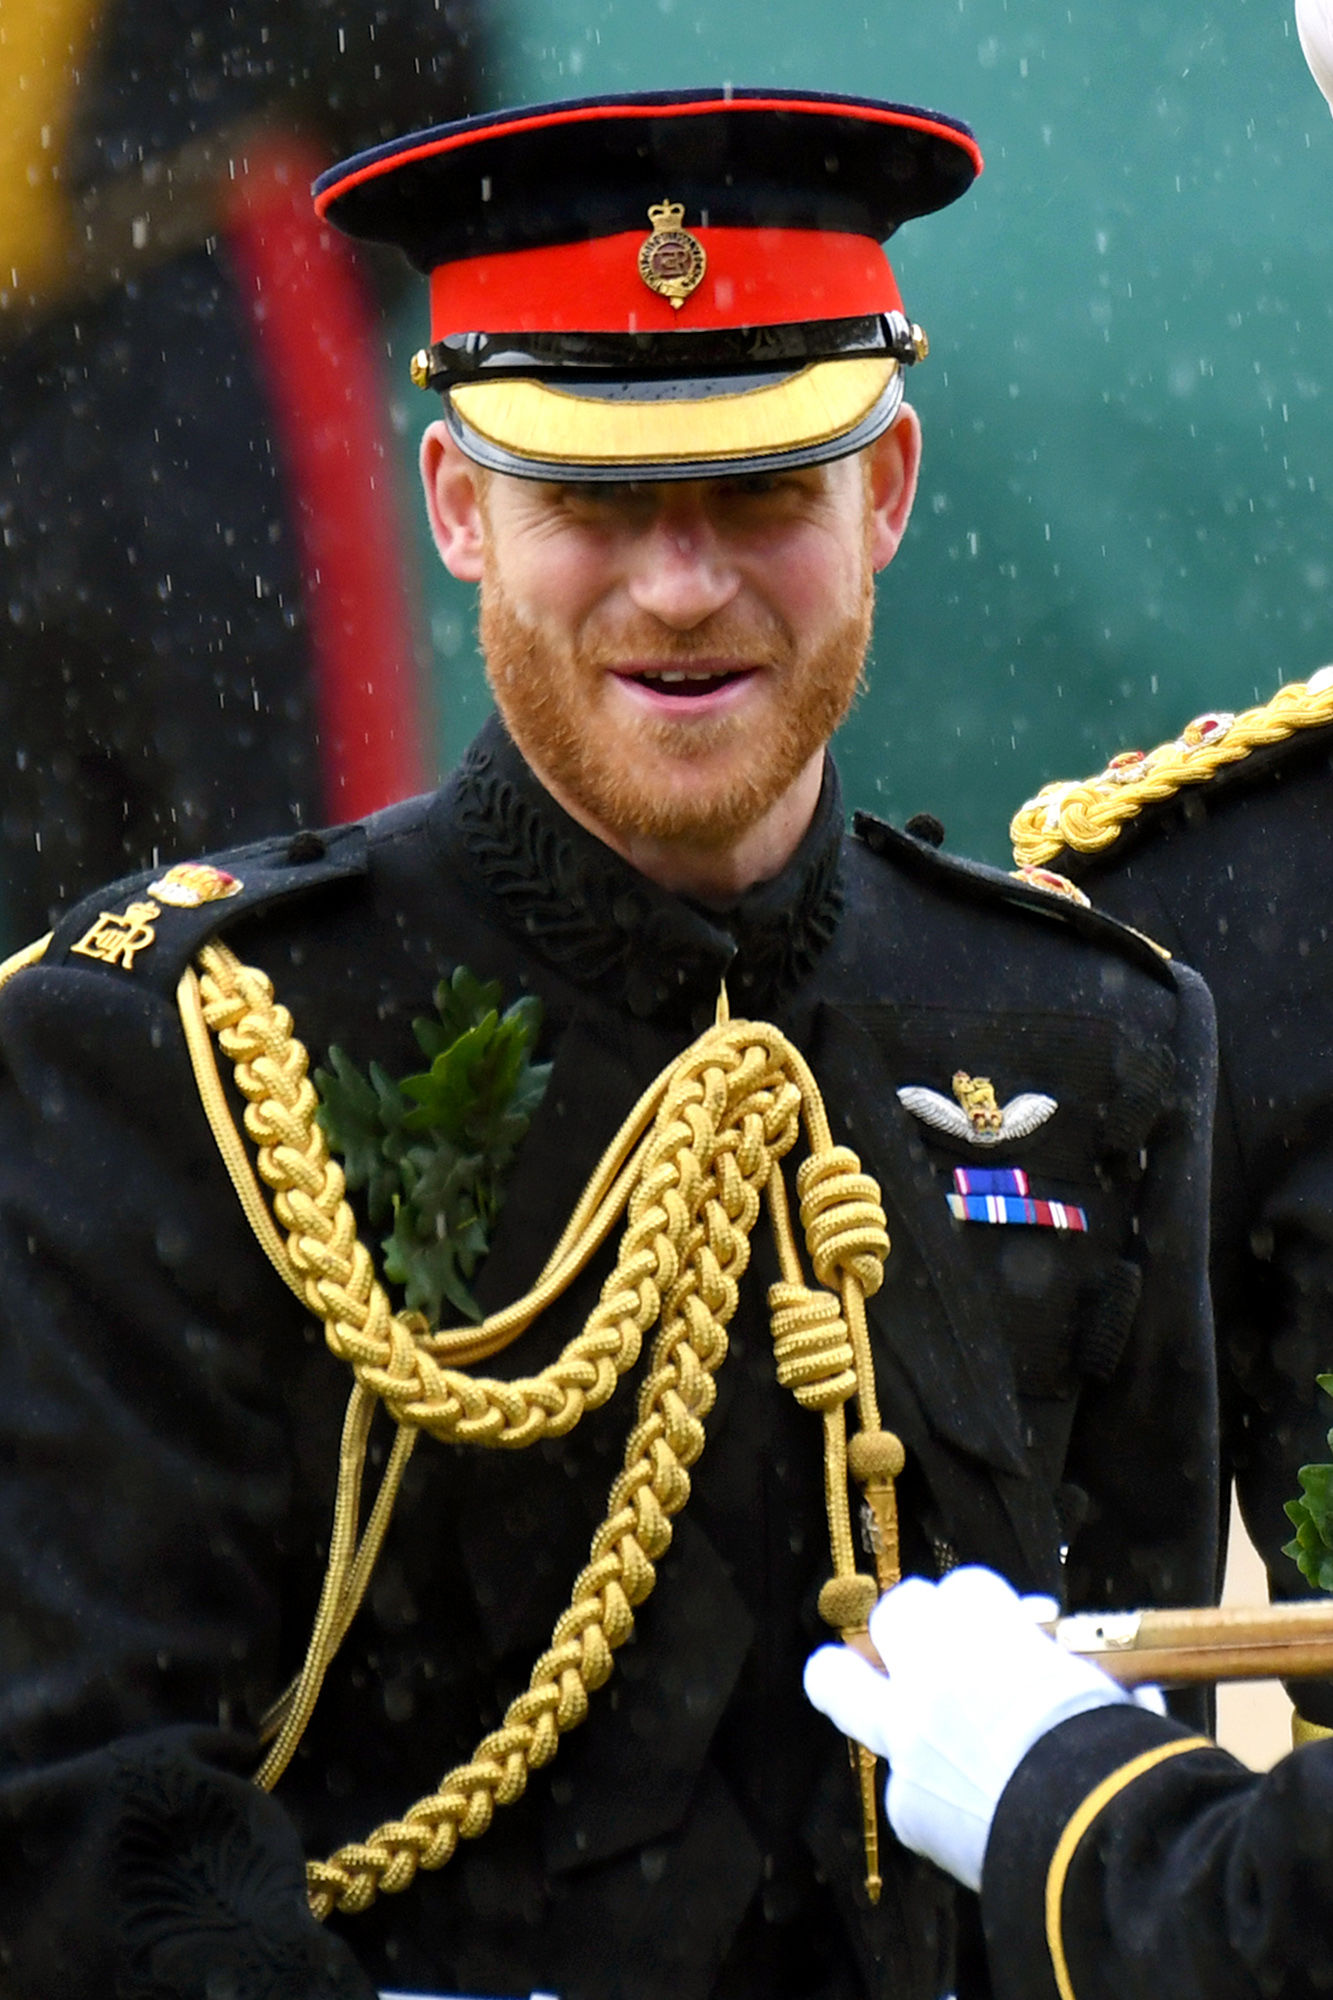 Prince Harry Steps Out in Uniform to Visit Veterans' Retirement Home on D-Day